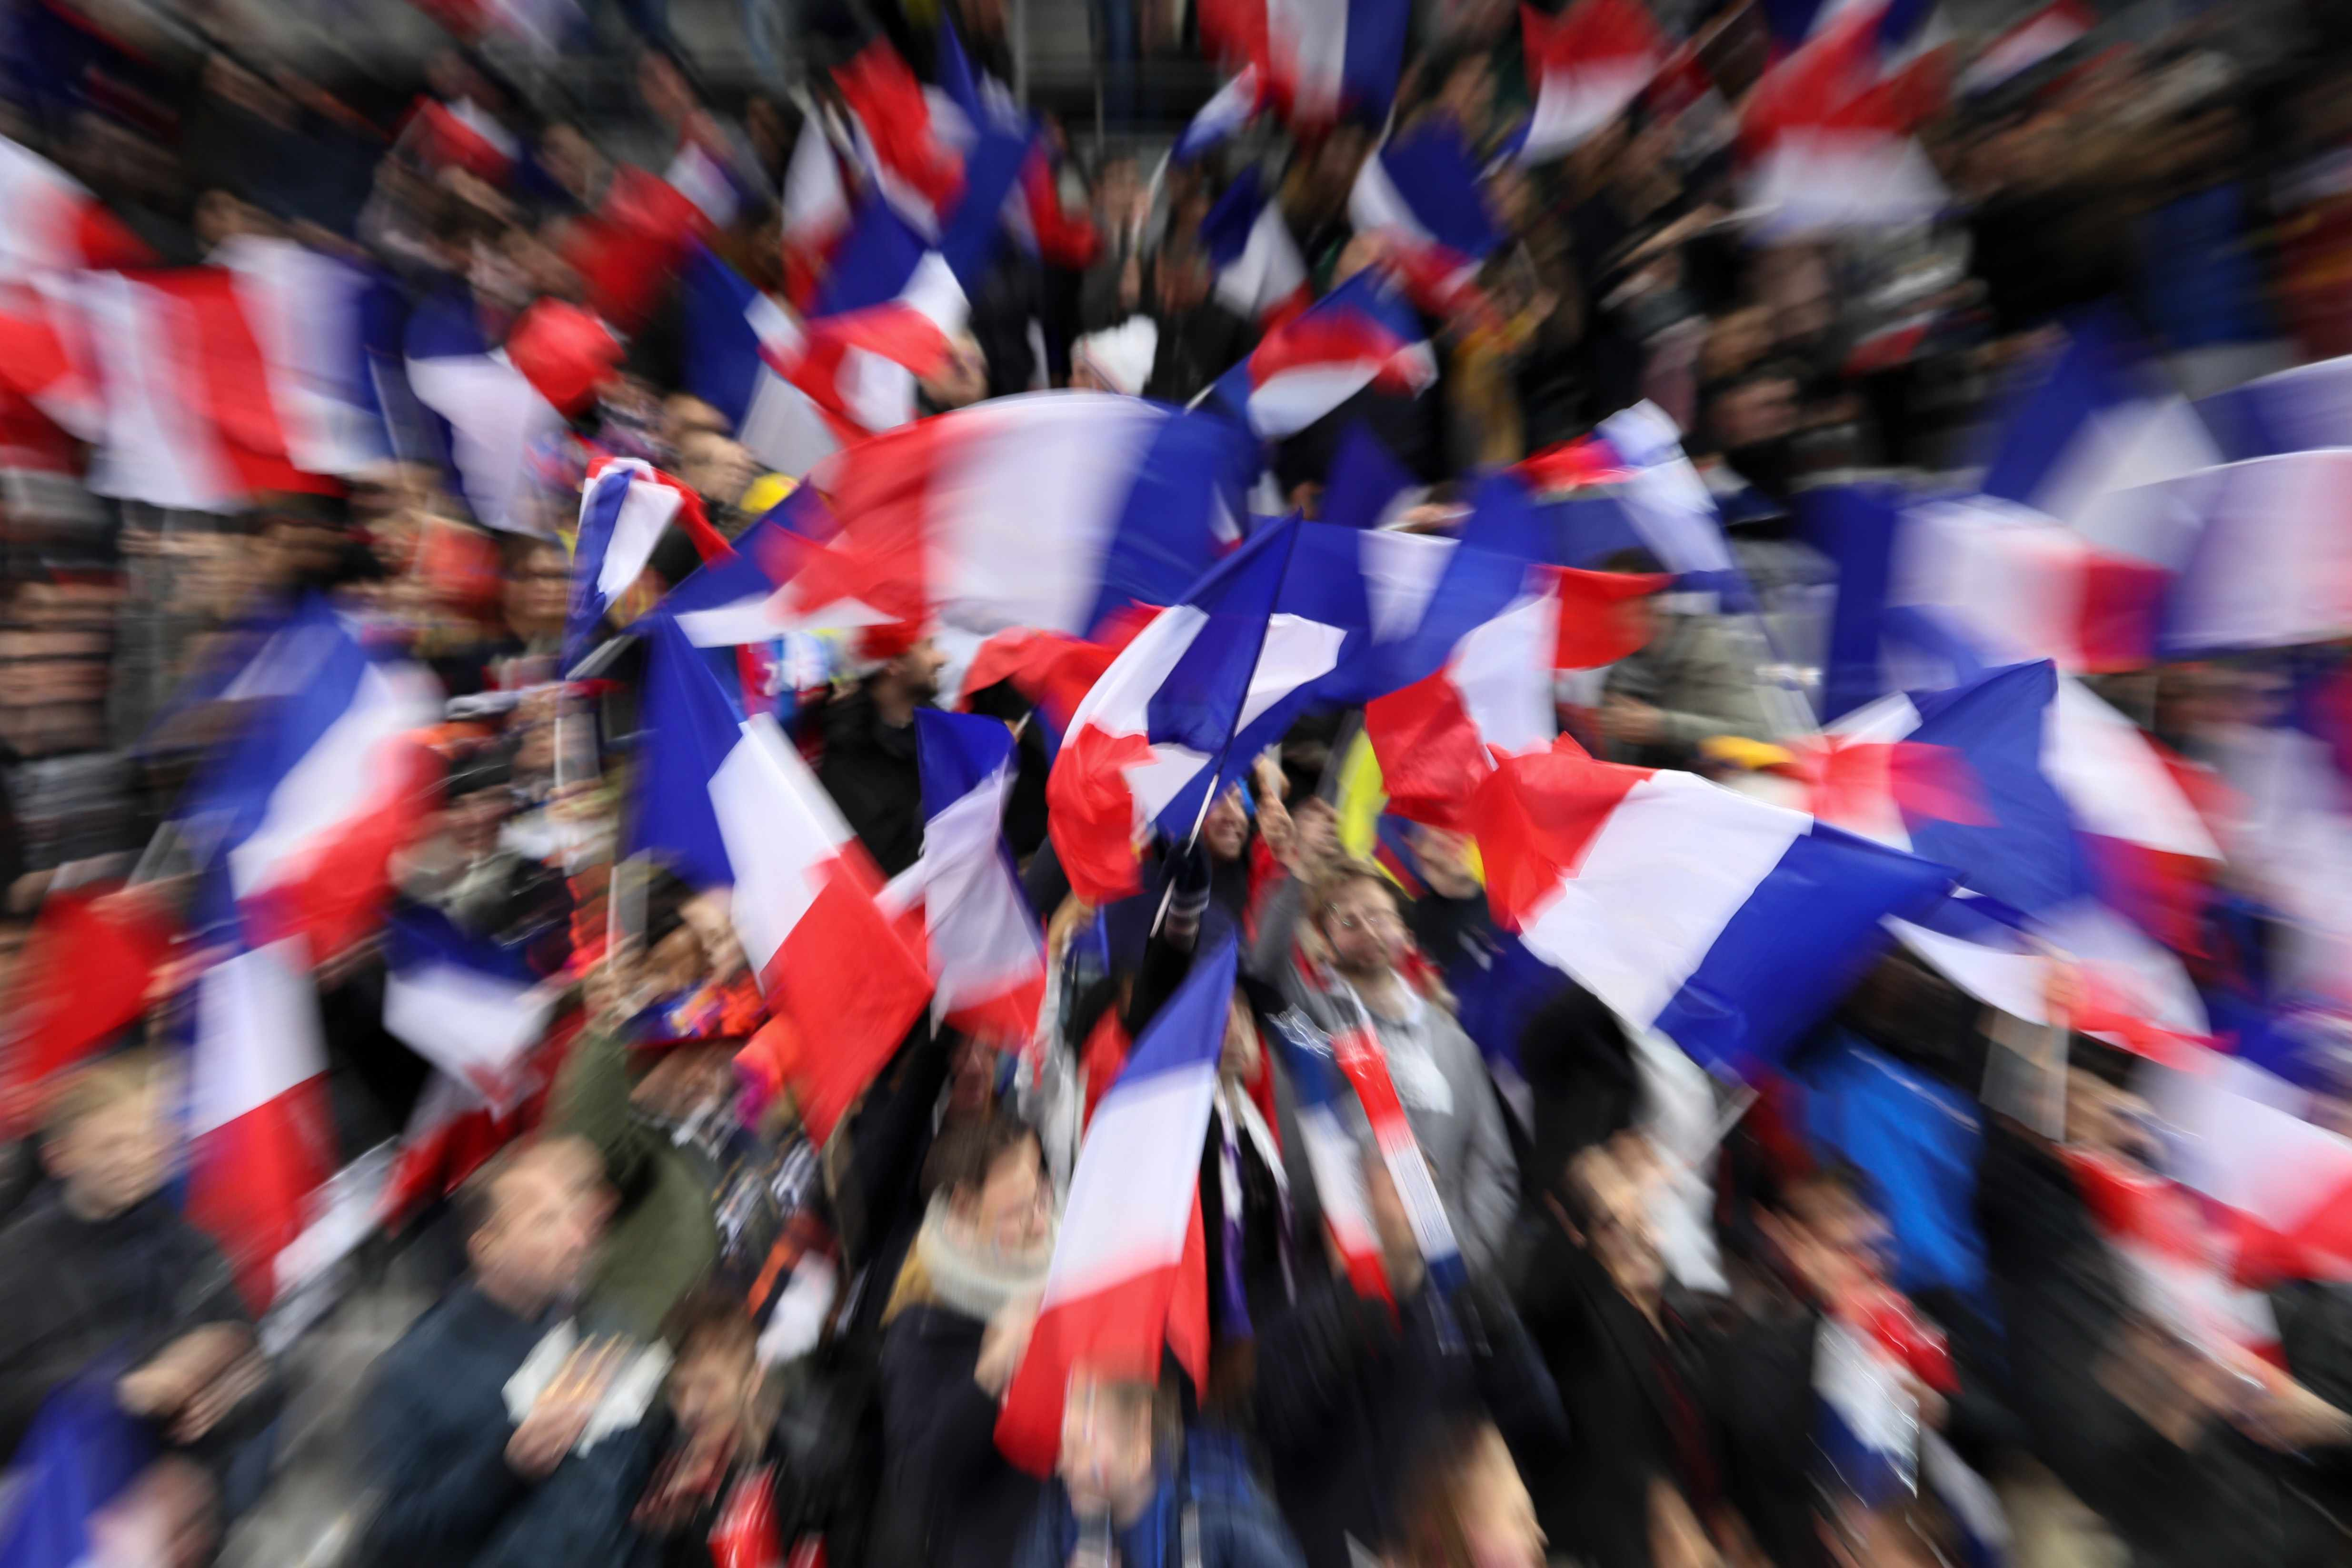 PARIS, FRANCE - MARCH 23: Fans of France wave the national flag during the International Friendly match between France and Colombia at Stade de France on March 23, 2018 in Paris, France. (Photo by Matthew Ashton - AMA/Getty Images)